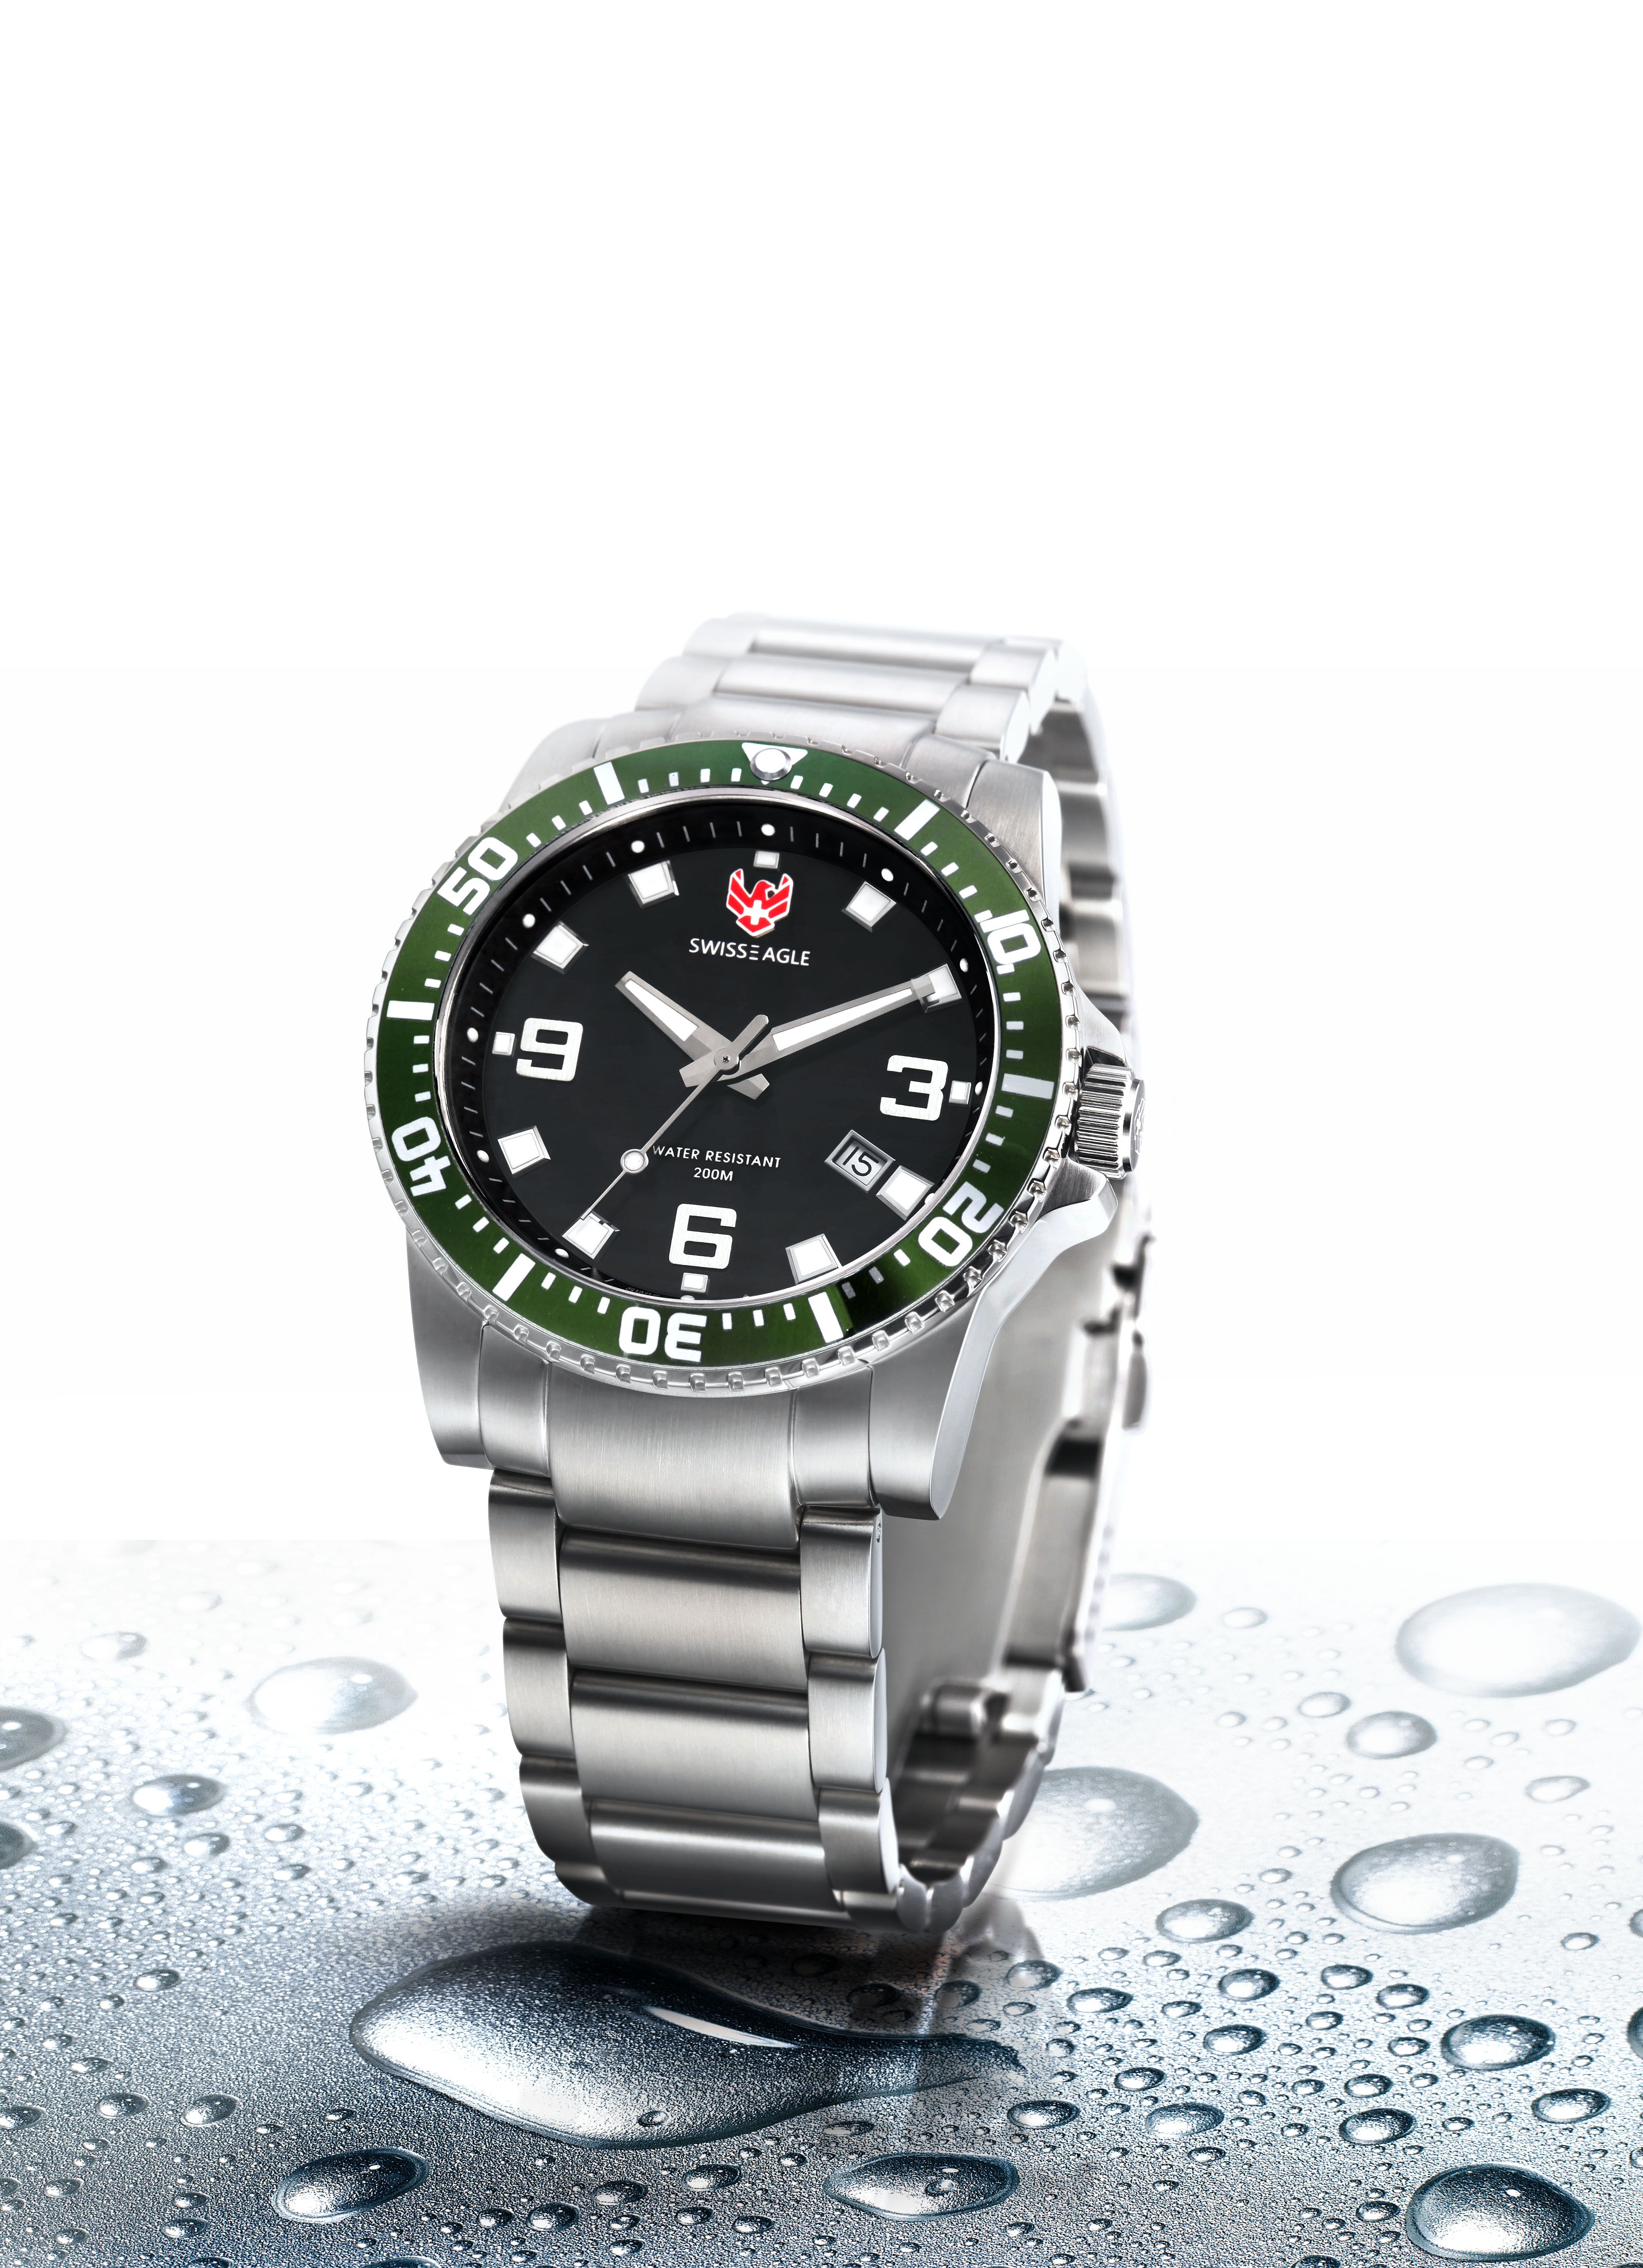 712e6153aa32 The Swiss Eagle Admiral SE-9007-33 is a watch to be admired! It features a  Super Luminous Dial, Uni-Directional Turning Dive Bezel in Green & Solid  Marine ...